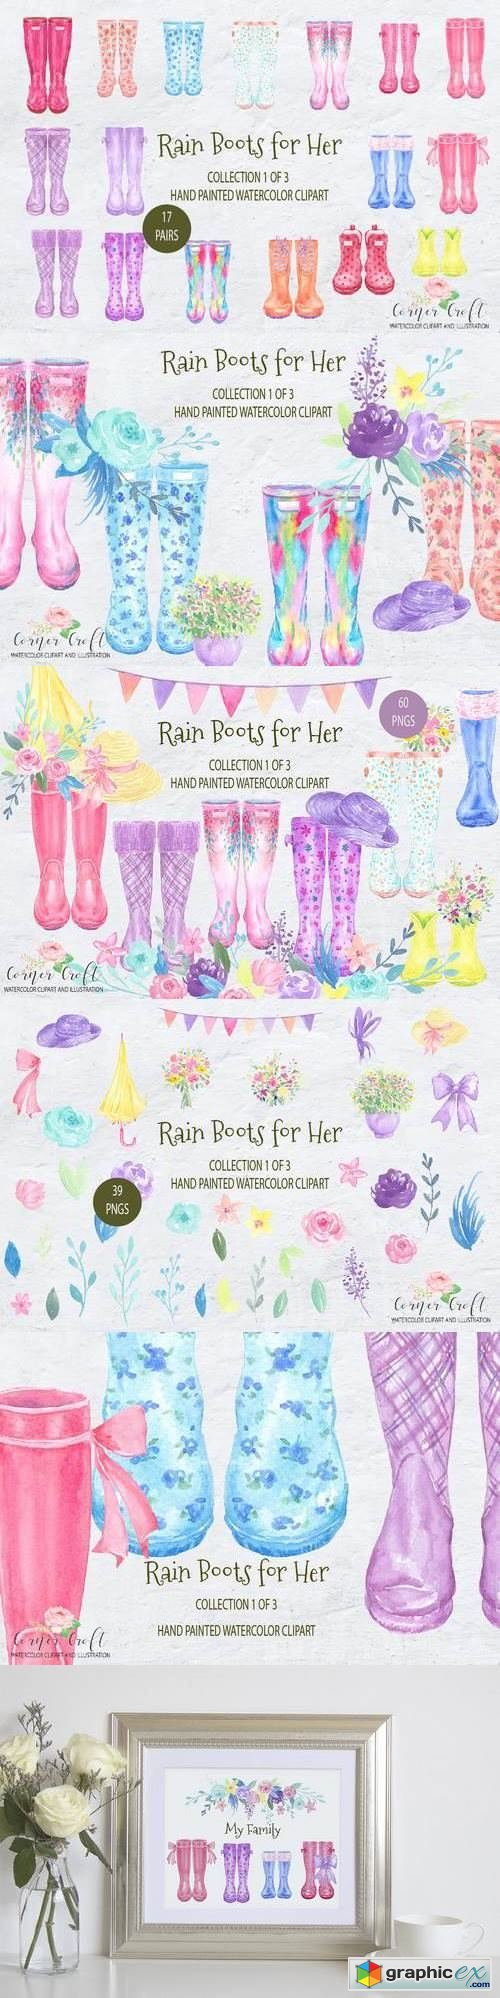 Watercolor Rain Boots for Her - Watercolor collection 1 of 3